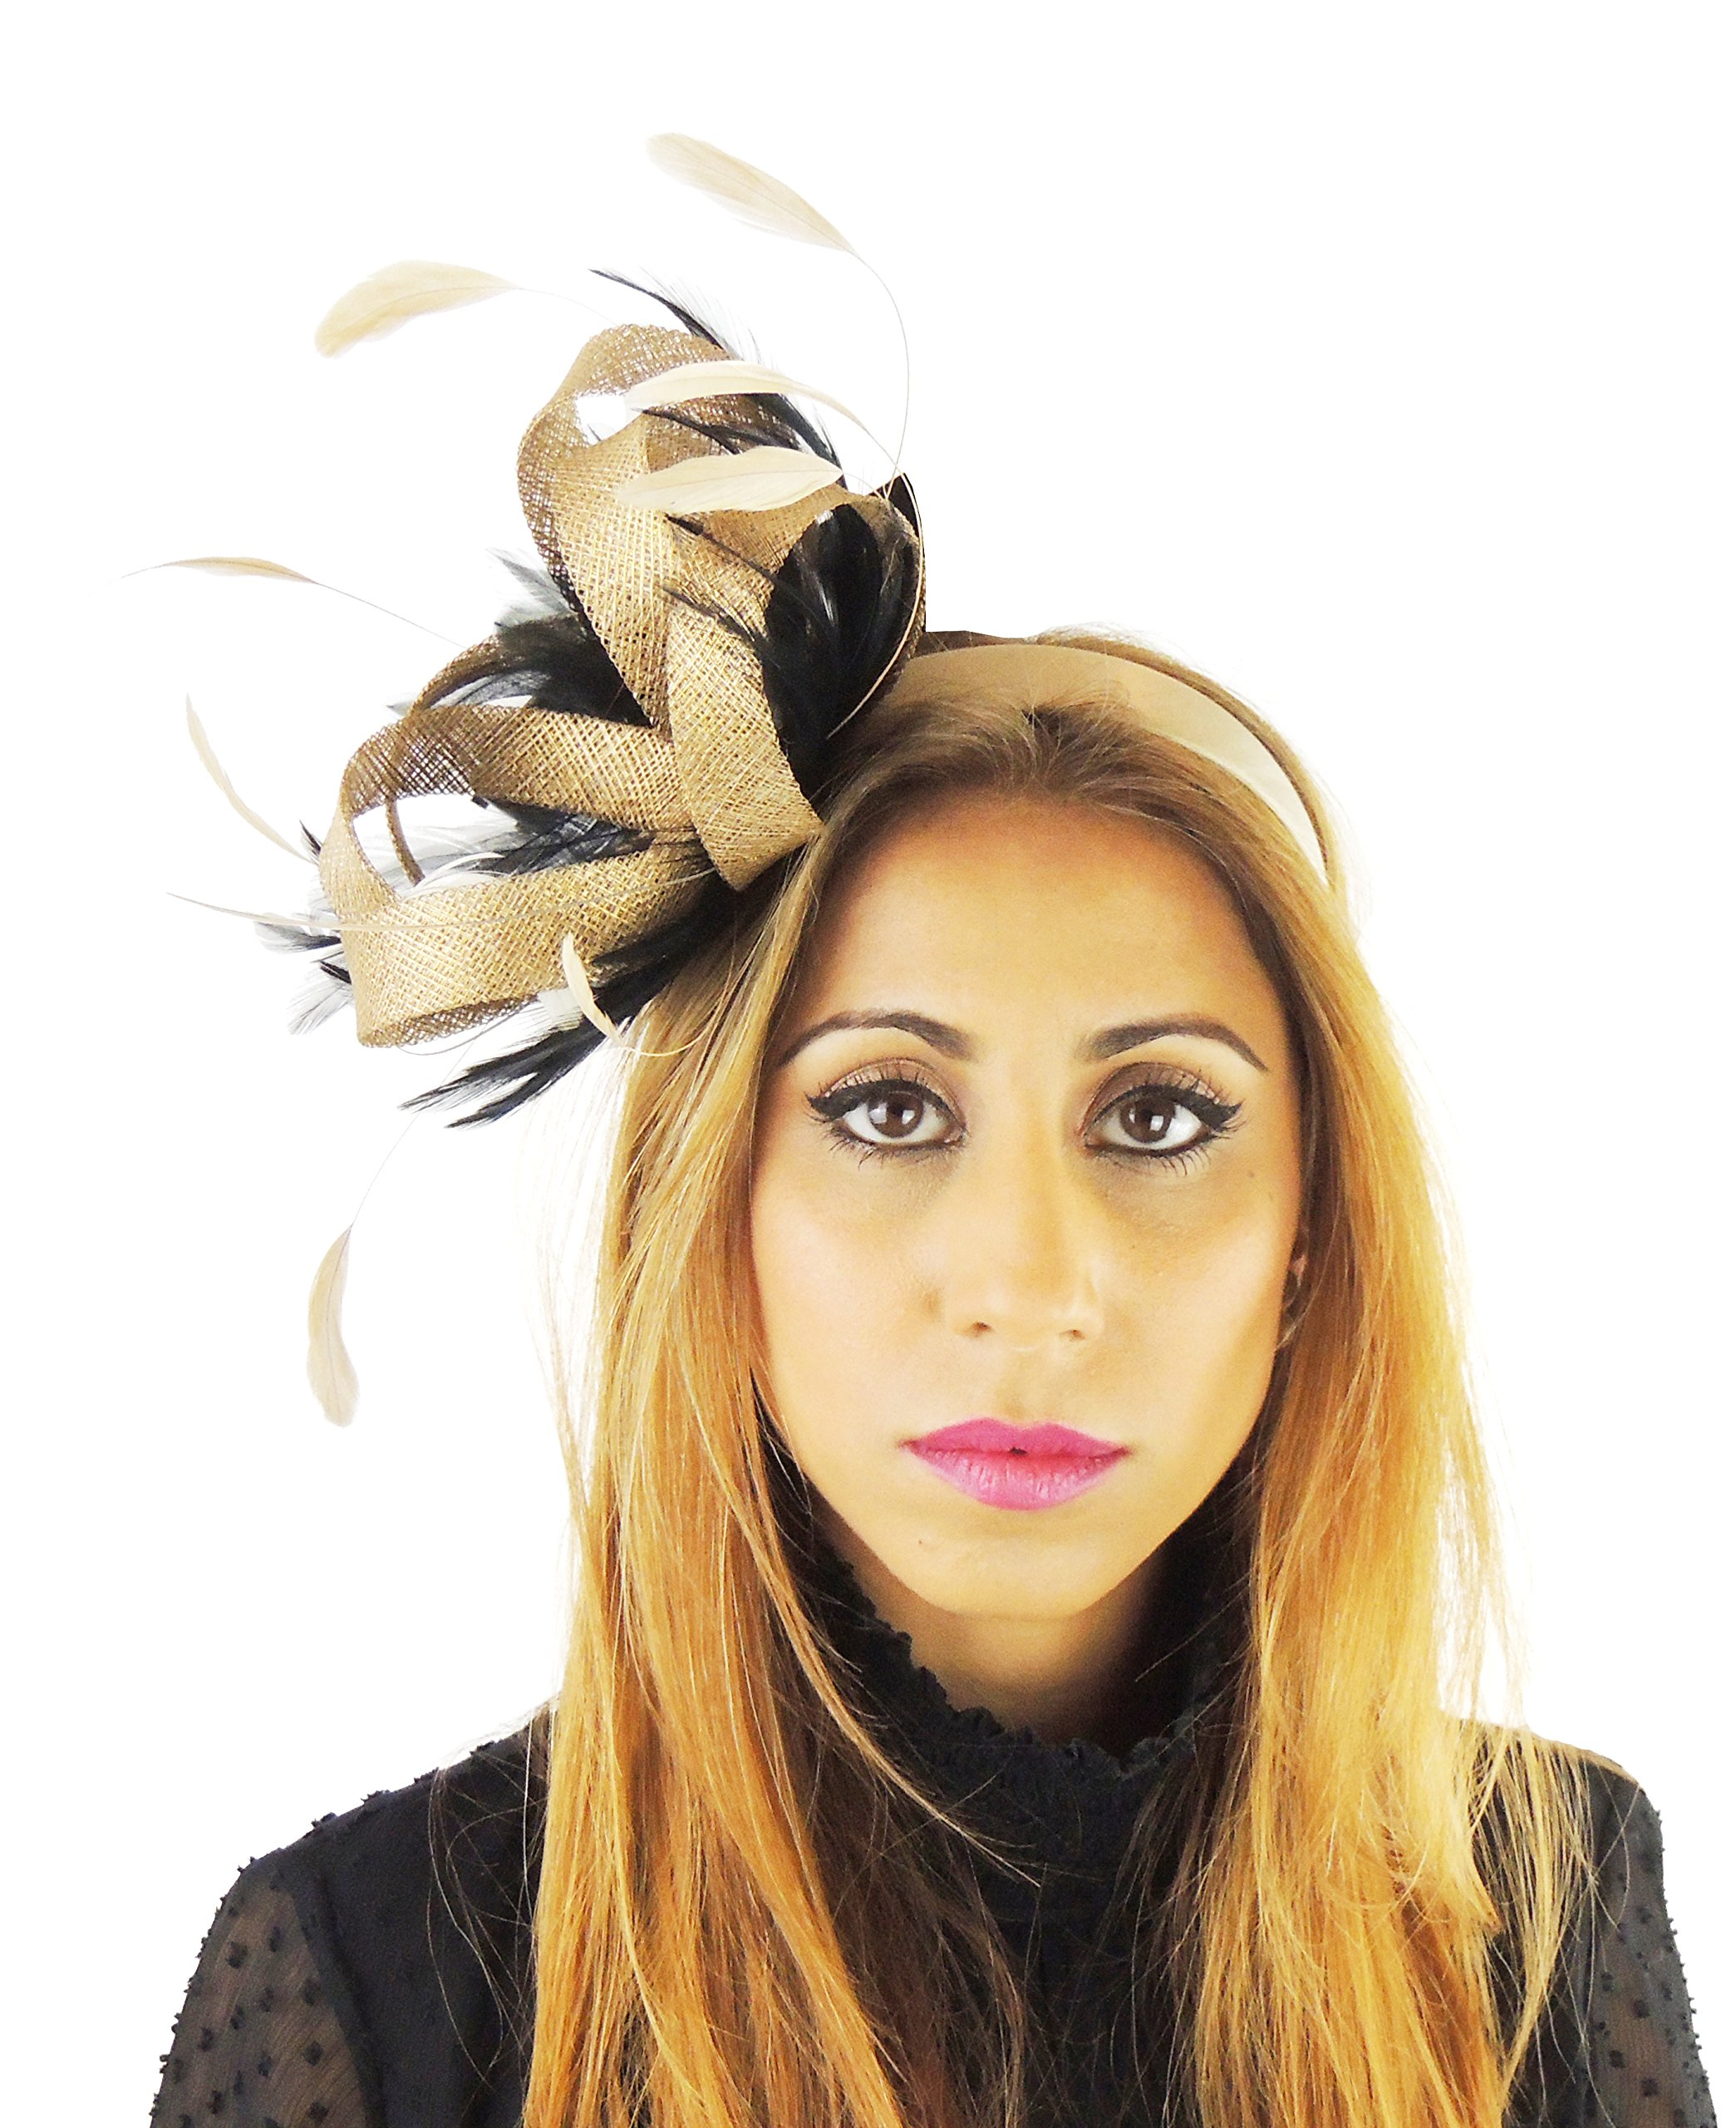 Hats By Cressida Ladies Wedding Races Ascot Derby Fascinator Headband Black Gold by Hats By Cressida